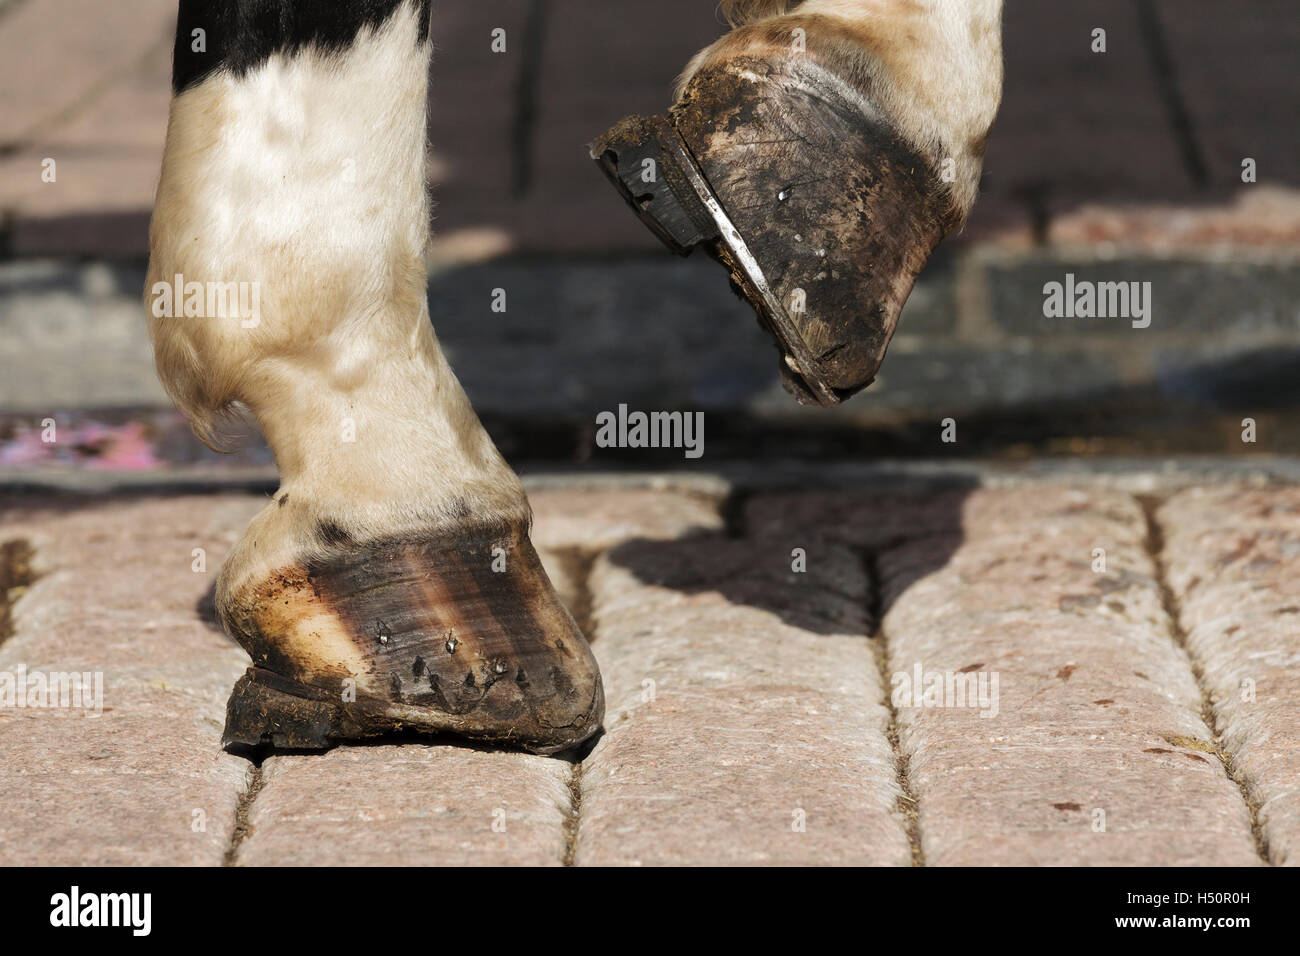 Horse's hooves on the cobbled road - Stock Image